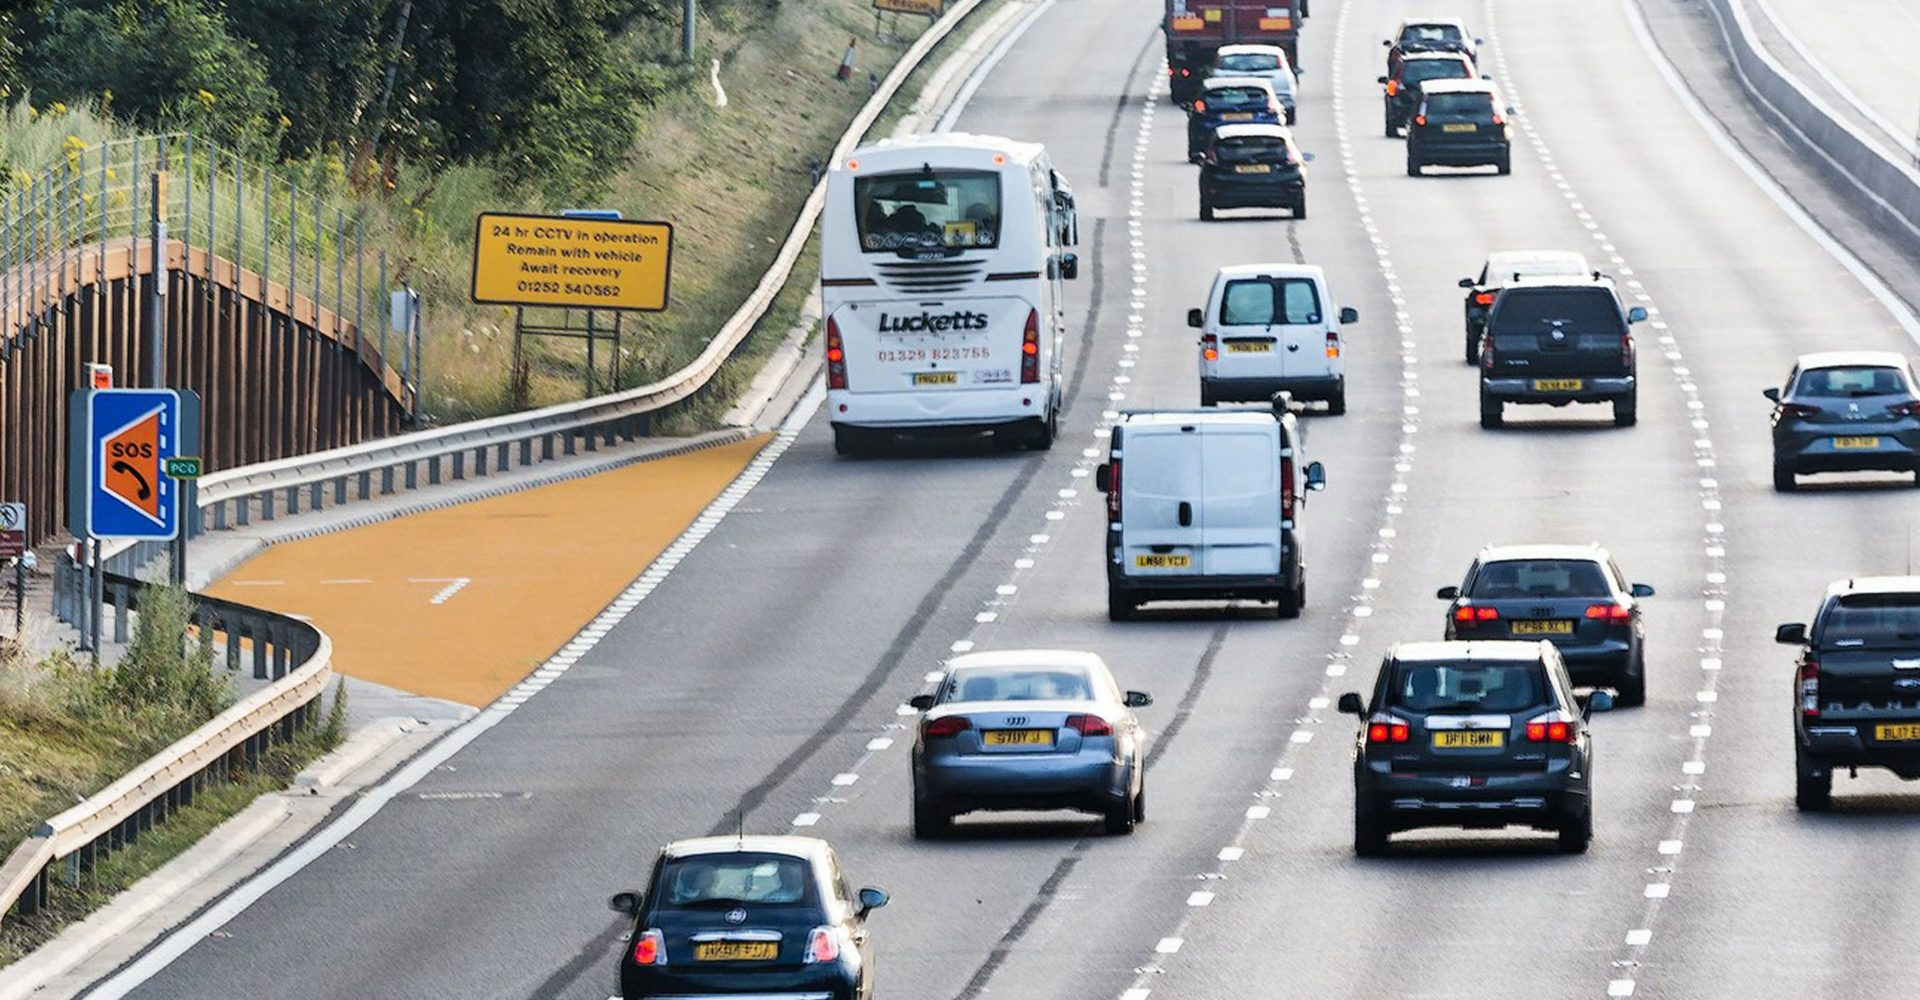 Smart motorways cause confusion for majority of UK drivers, survey suggests